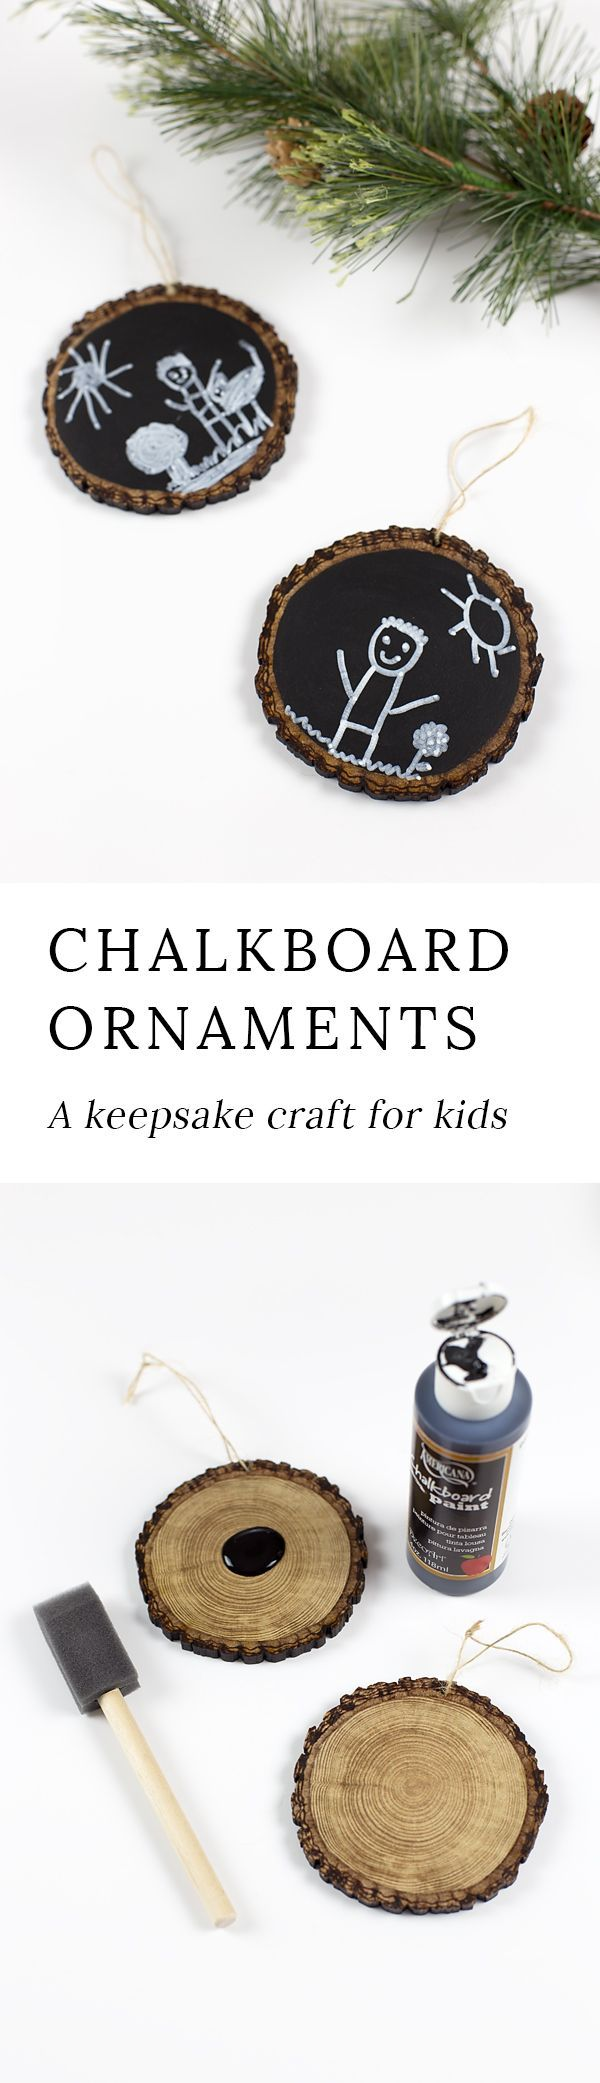 Easy Keepsake Chalkboard Ornaments | Fireflies and Mud Pies